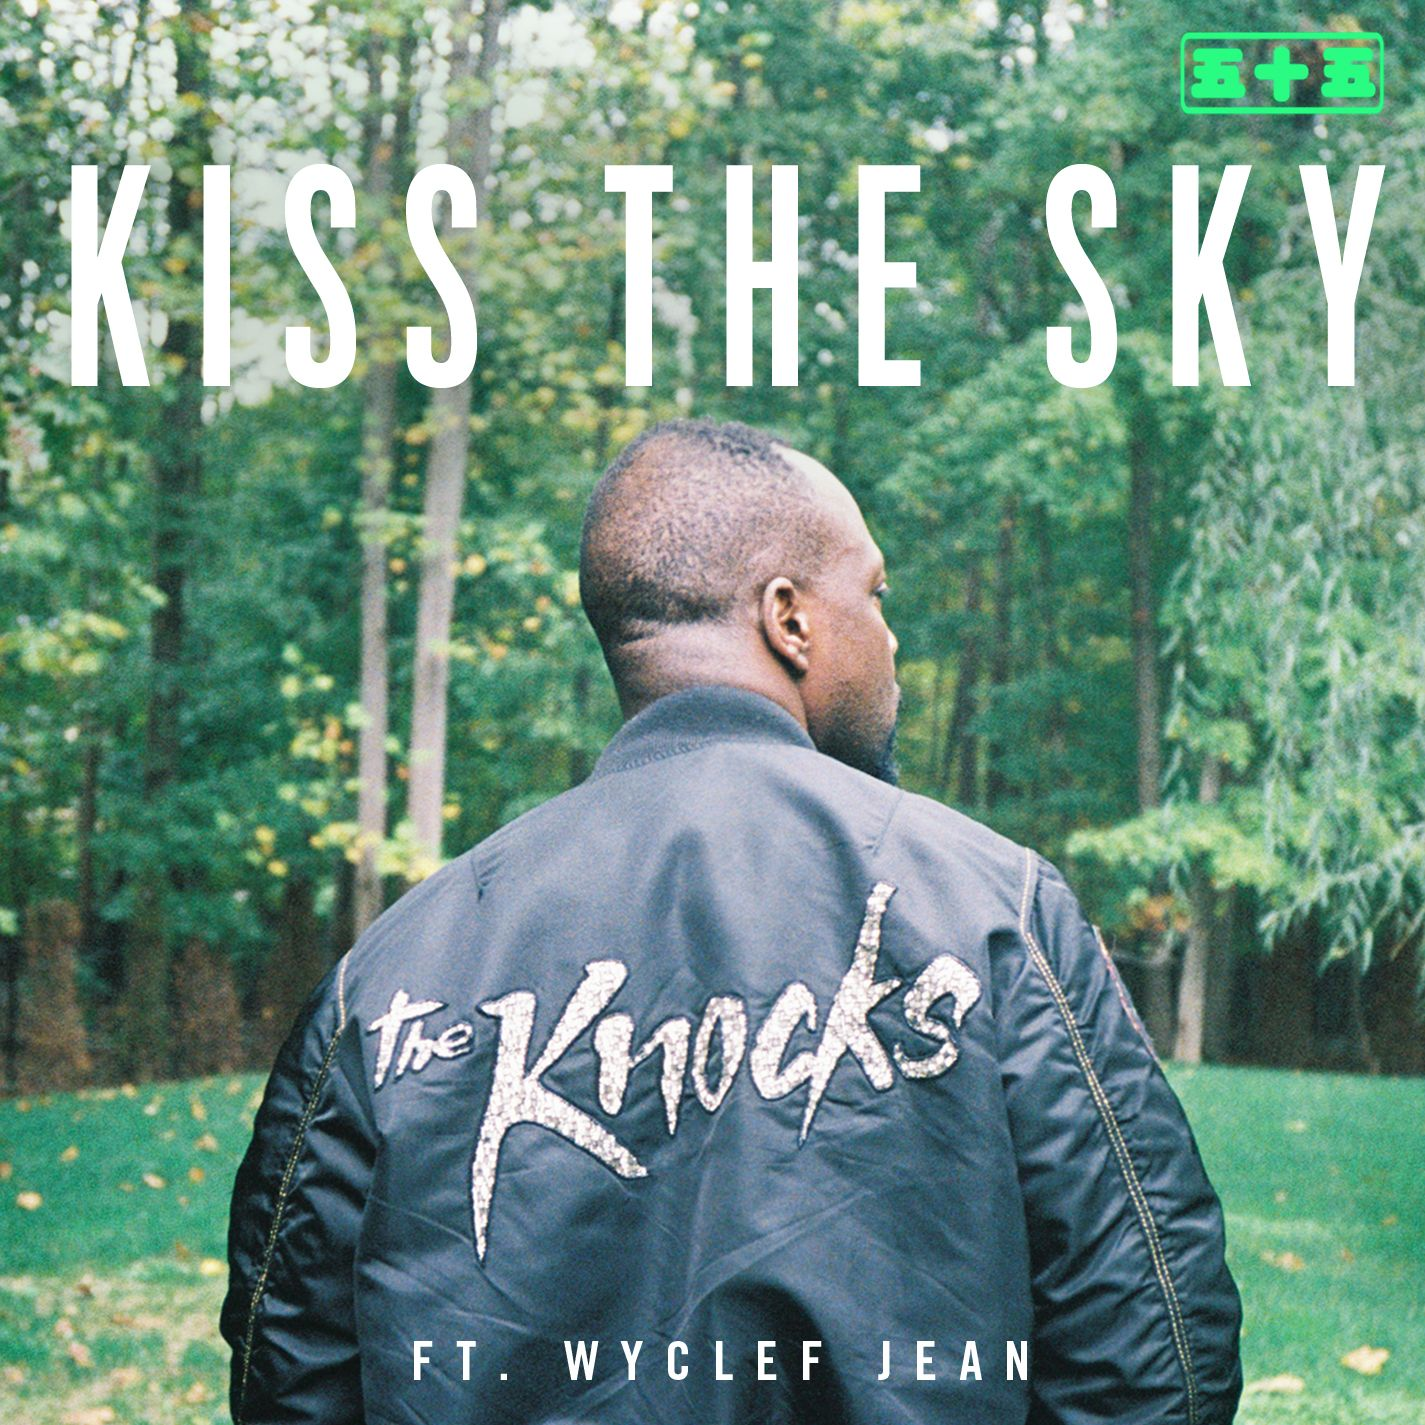 The Knocks - Kiss The Sky feat. Wyclef Jean